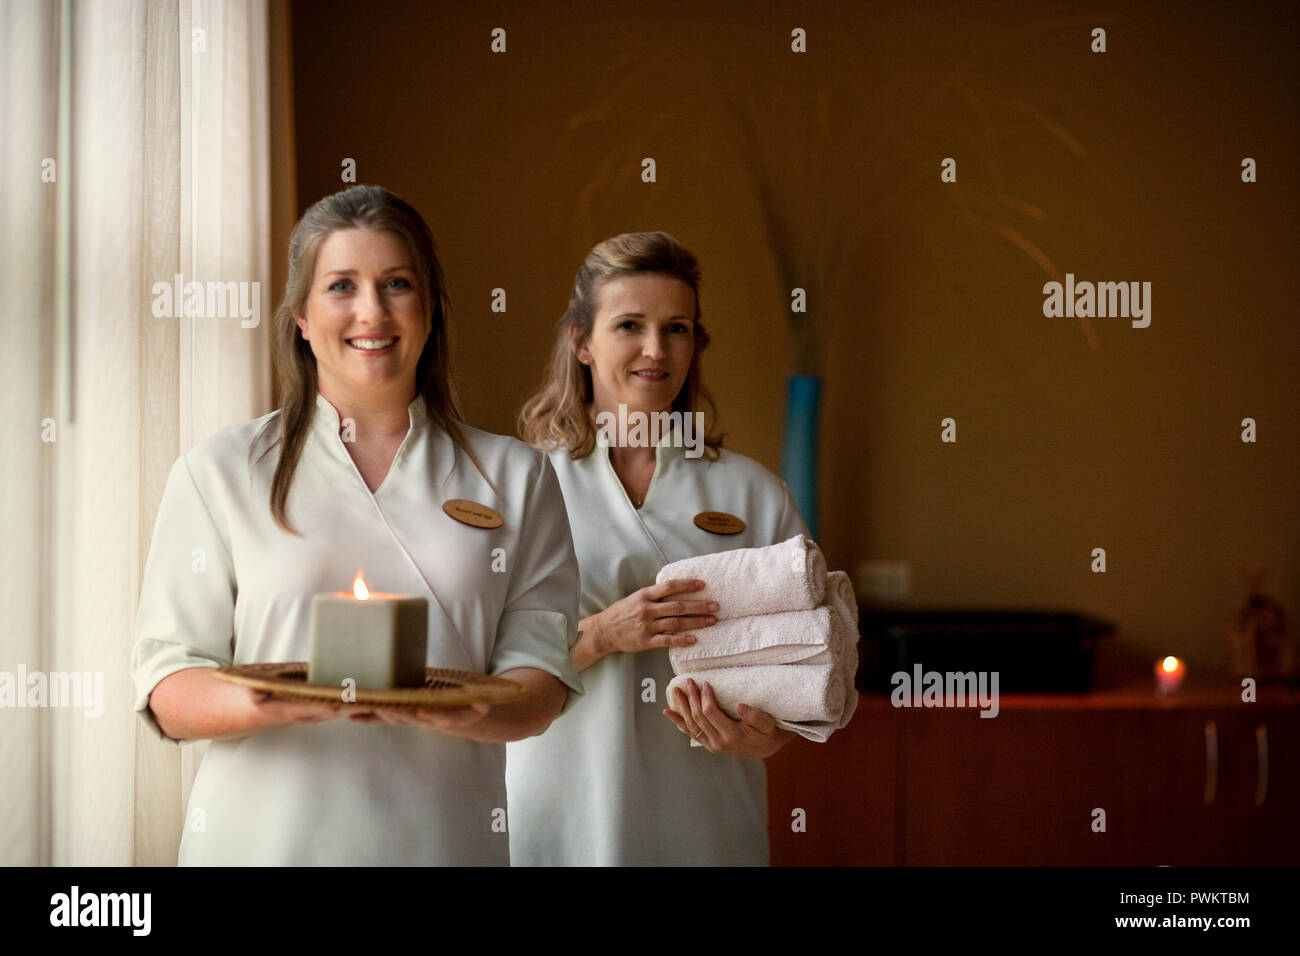 Portrait of two smiling middle-aged massage therapists at a health spa. Stock Photo